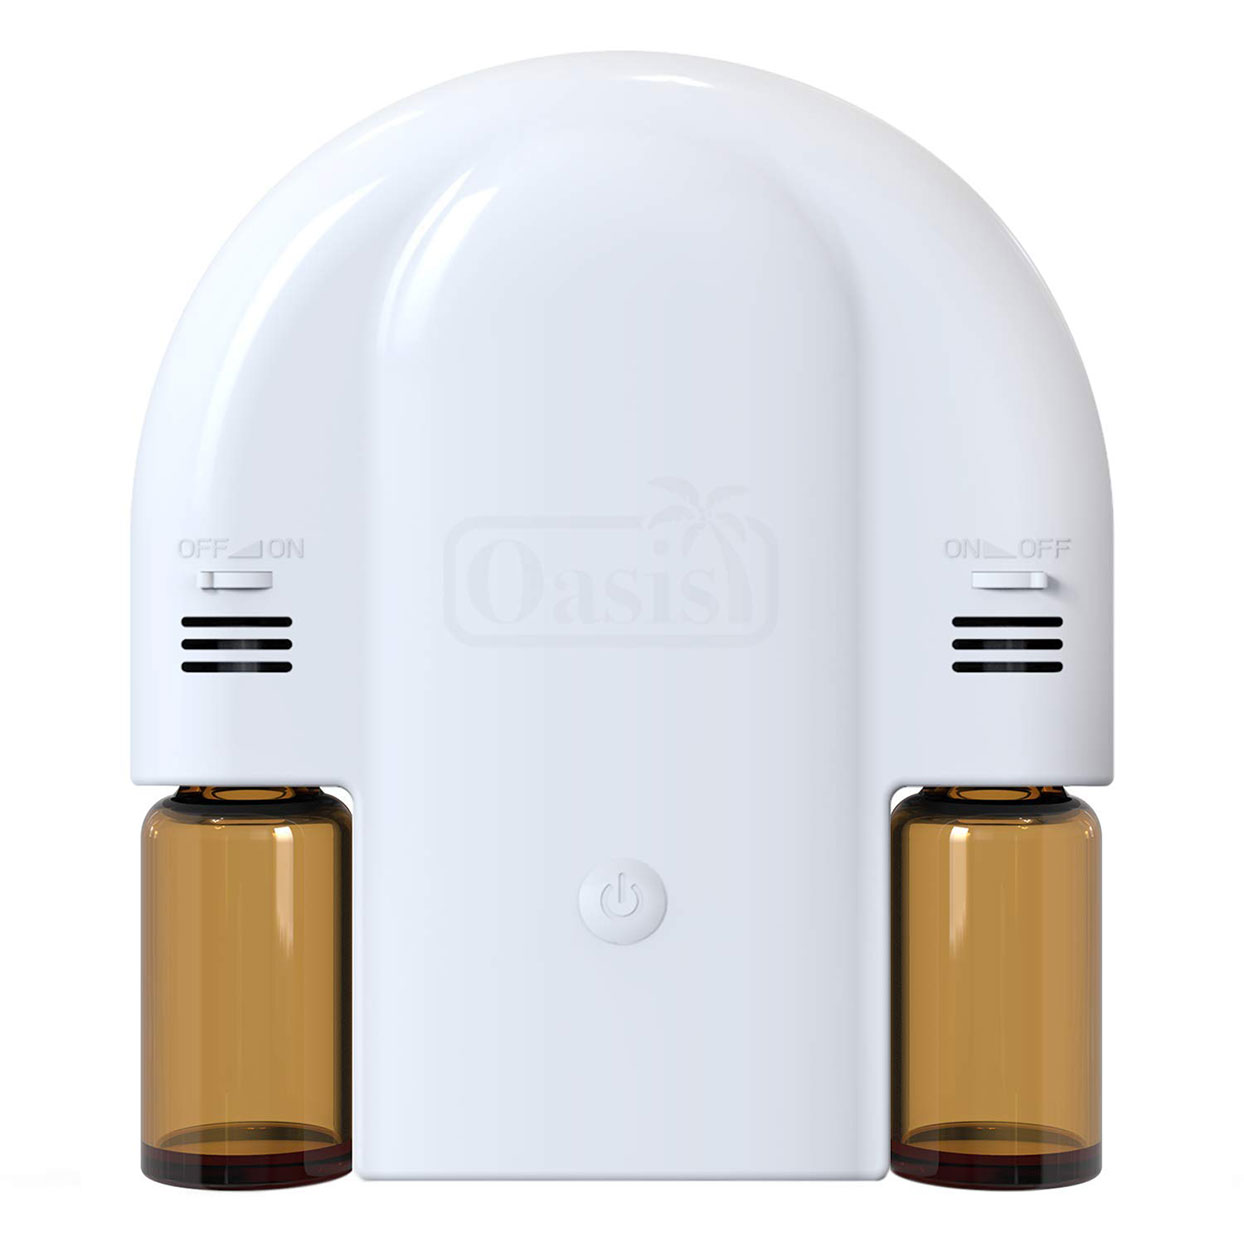 oasis-shower-essential-oil-diffuser